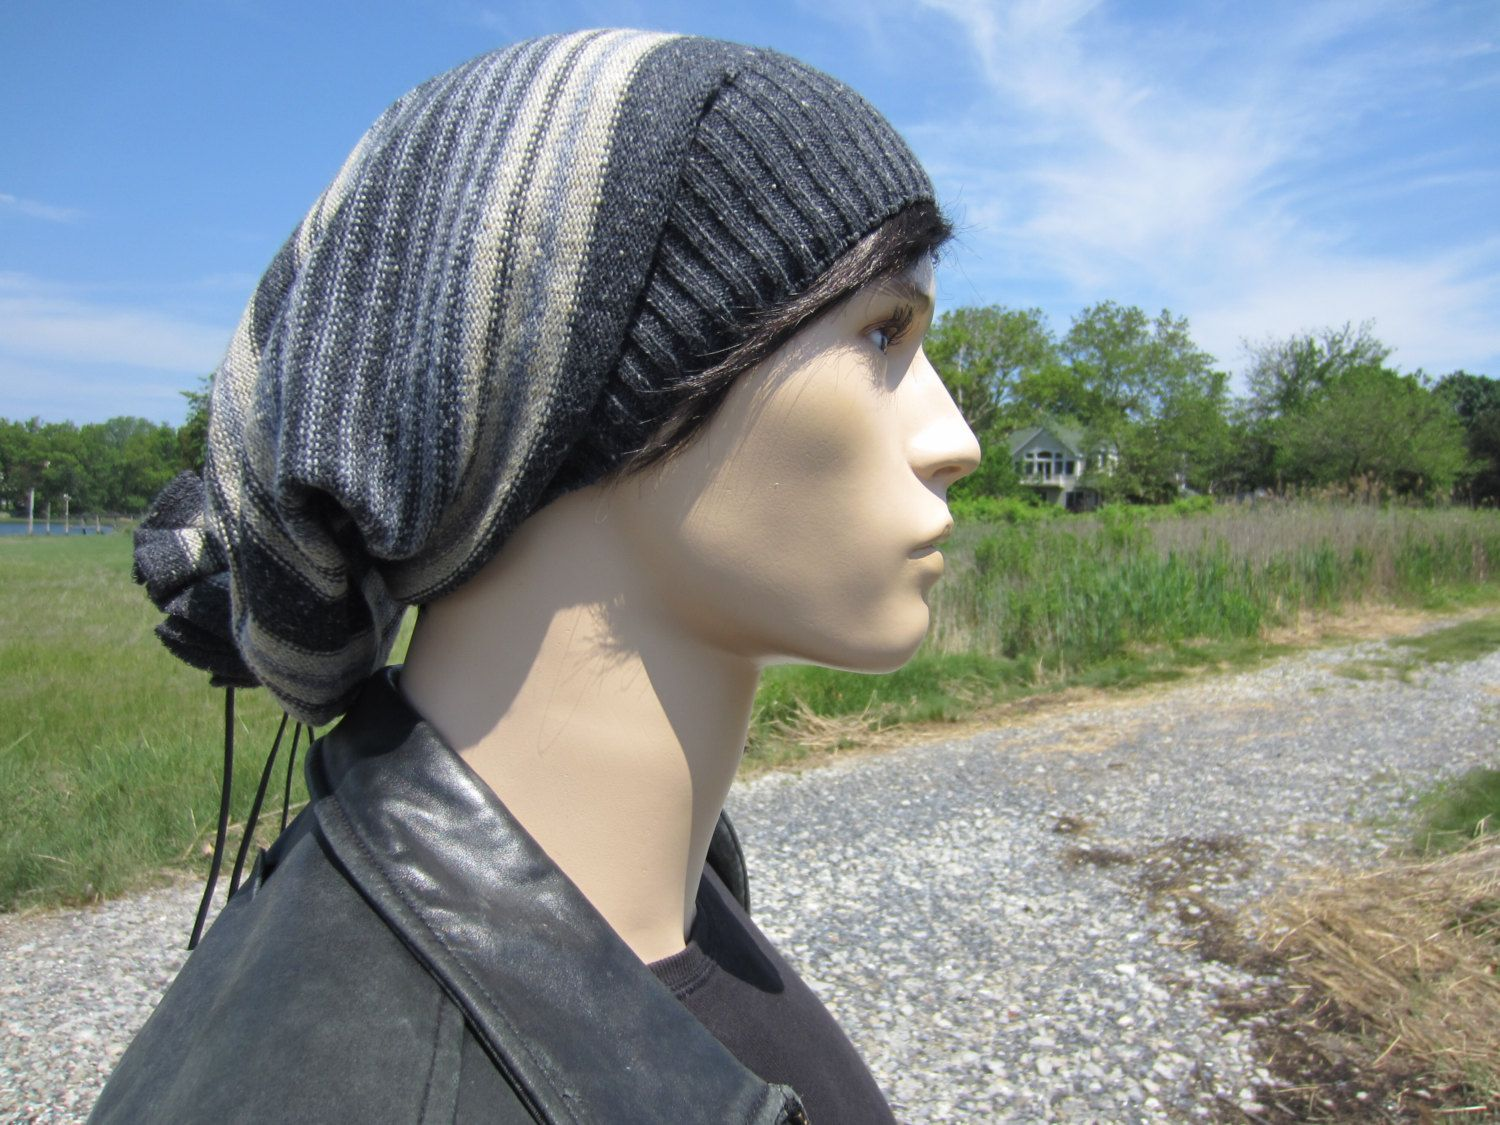 e37fb7fc Big Oversized Tam Tie Back Slouchy Beanie Men's Bohemian Clothing Cotton  Wool Slouch Hat Striped Charcoal Gray Baggy Extra Long A1575 by  Vacationhouse on ...